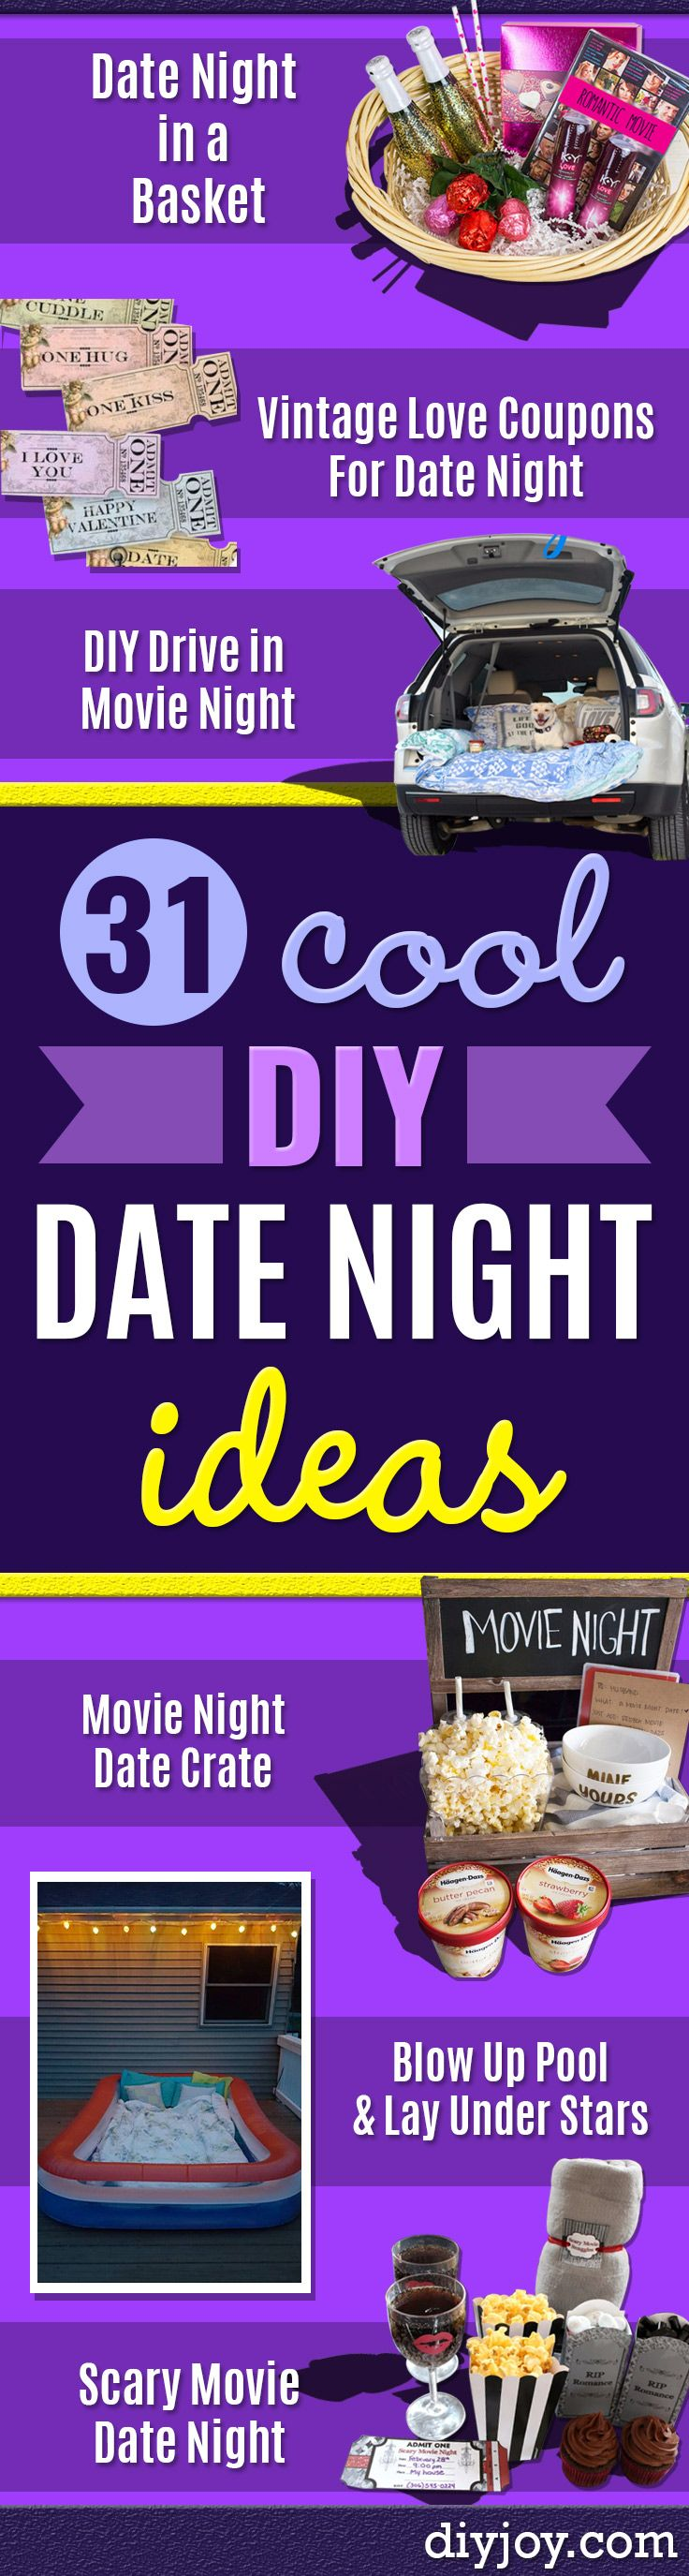 123 best diy gift images on pinterest gift ideas creative ideas 31 brilliant date night ideas you can act like you thought of yourself we wont tell solutioingenieria Gallery